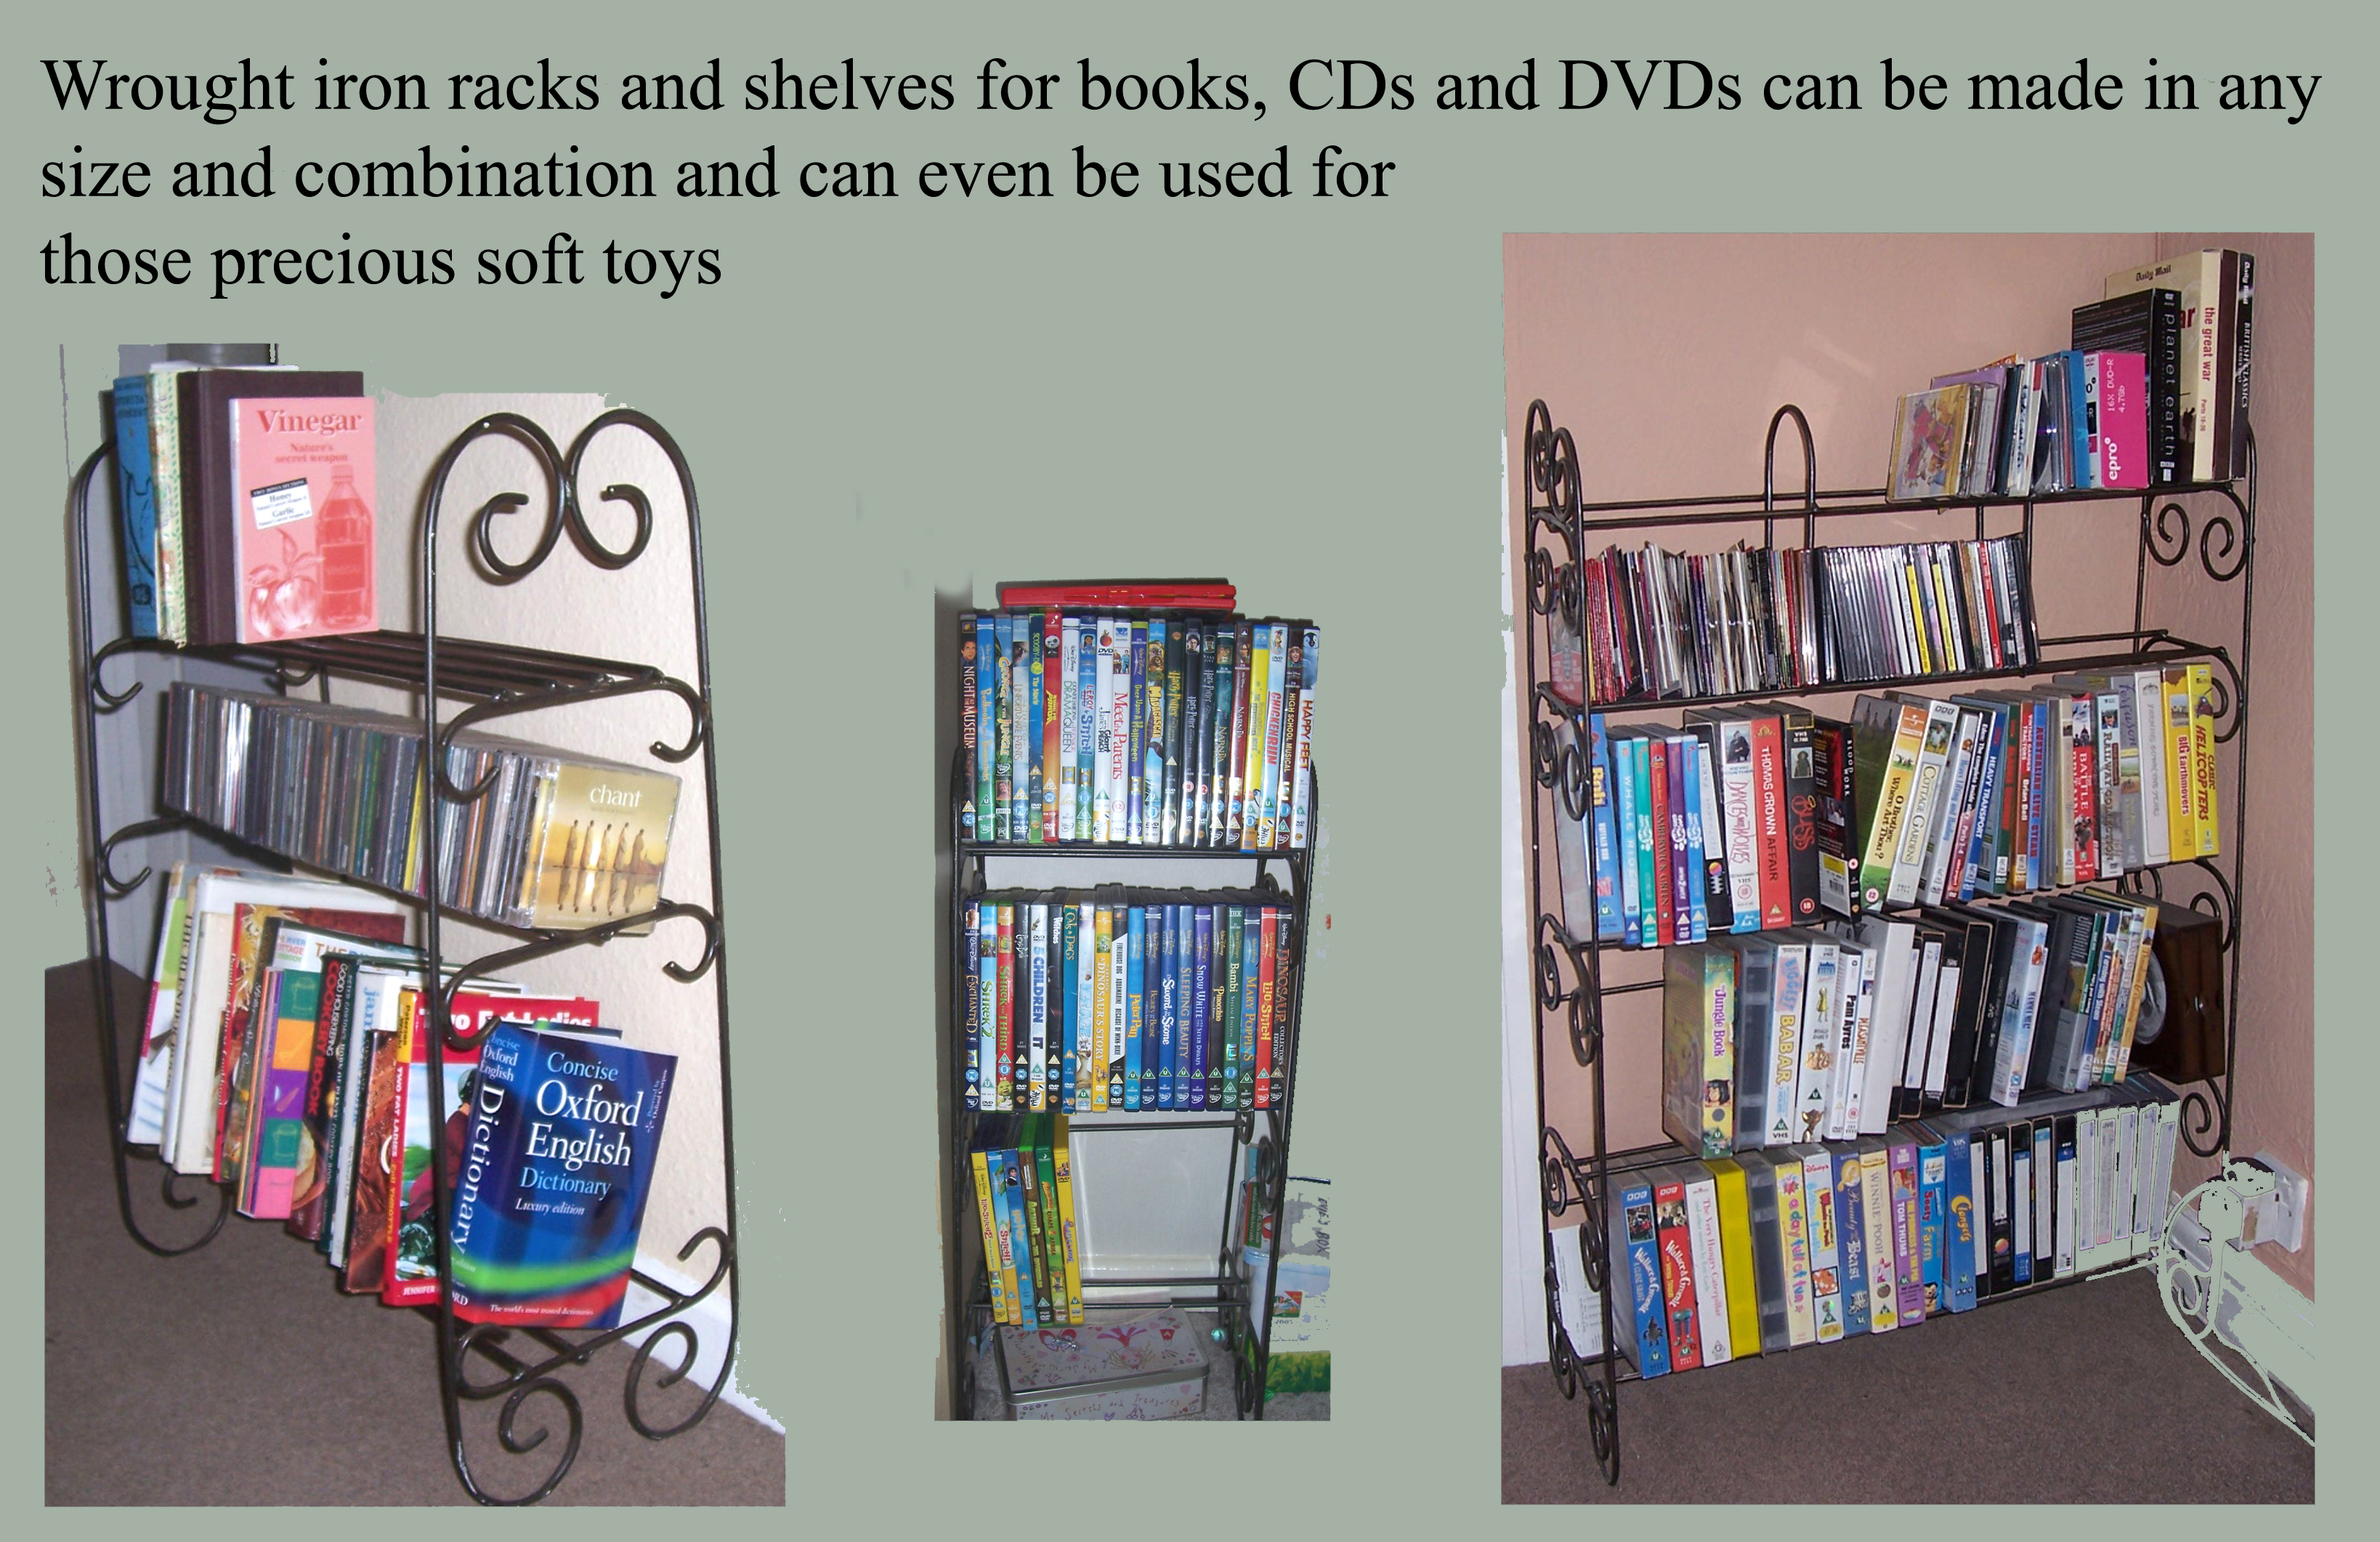 wrought iron bookshelves and  cd dvd racks